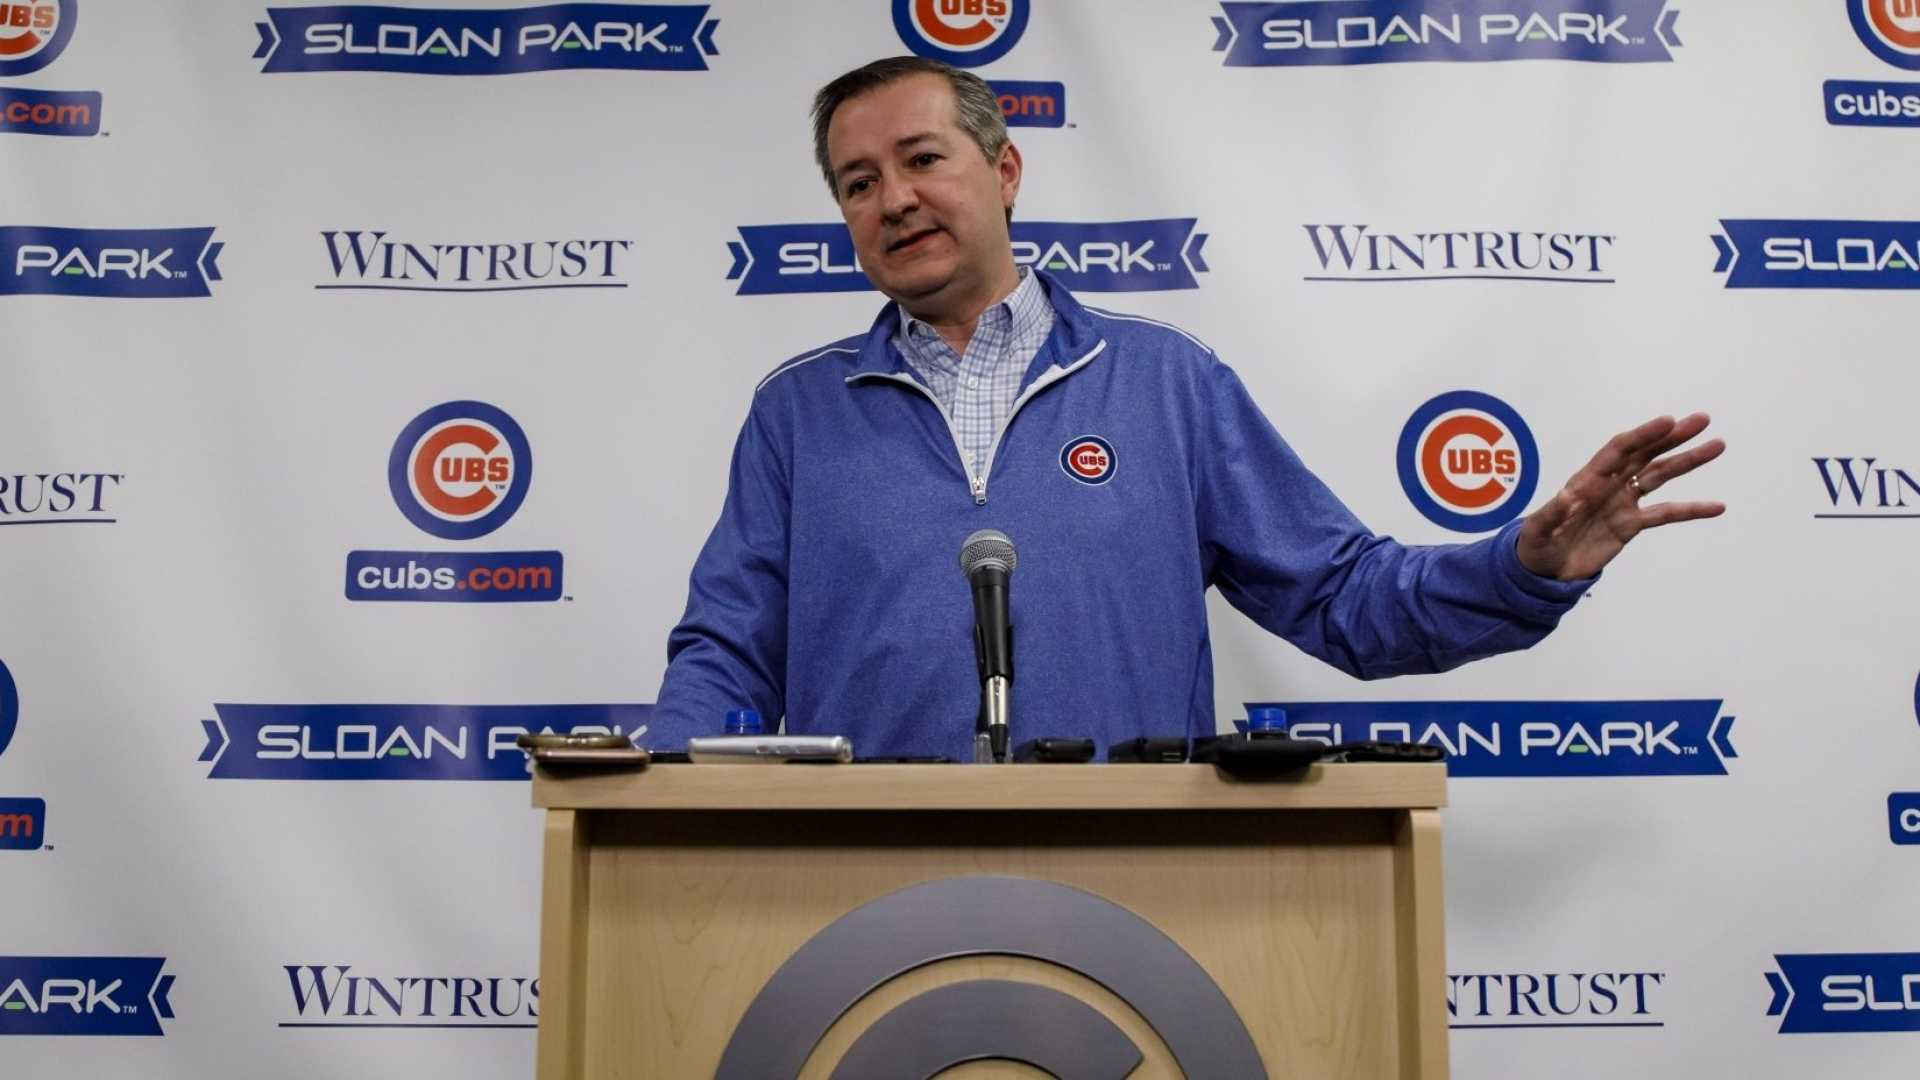 Tom Ricketts Explains What Baseball Analytics and People Management Have in Common